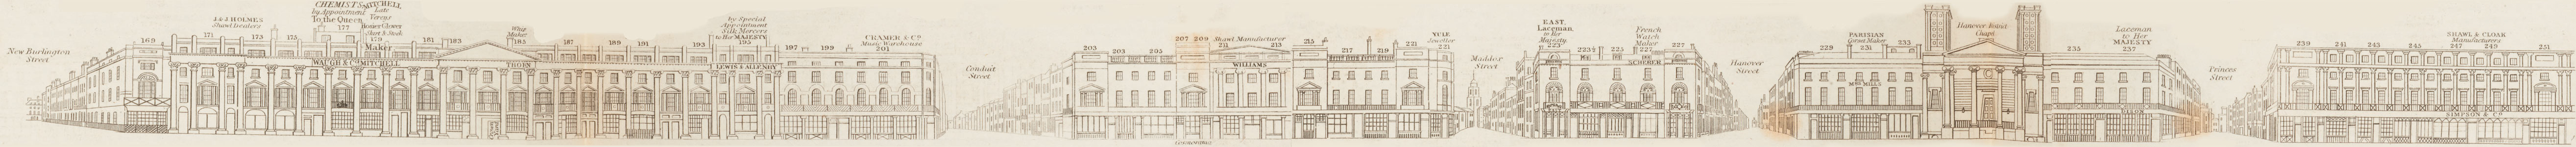 map - Tallis's London street views : No. 4. Regent Street, division 2 (west)